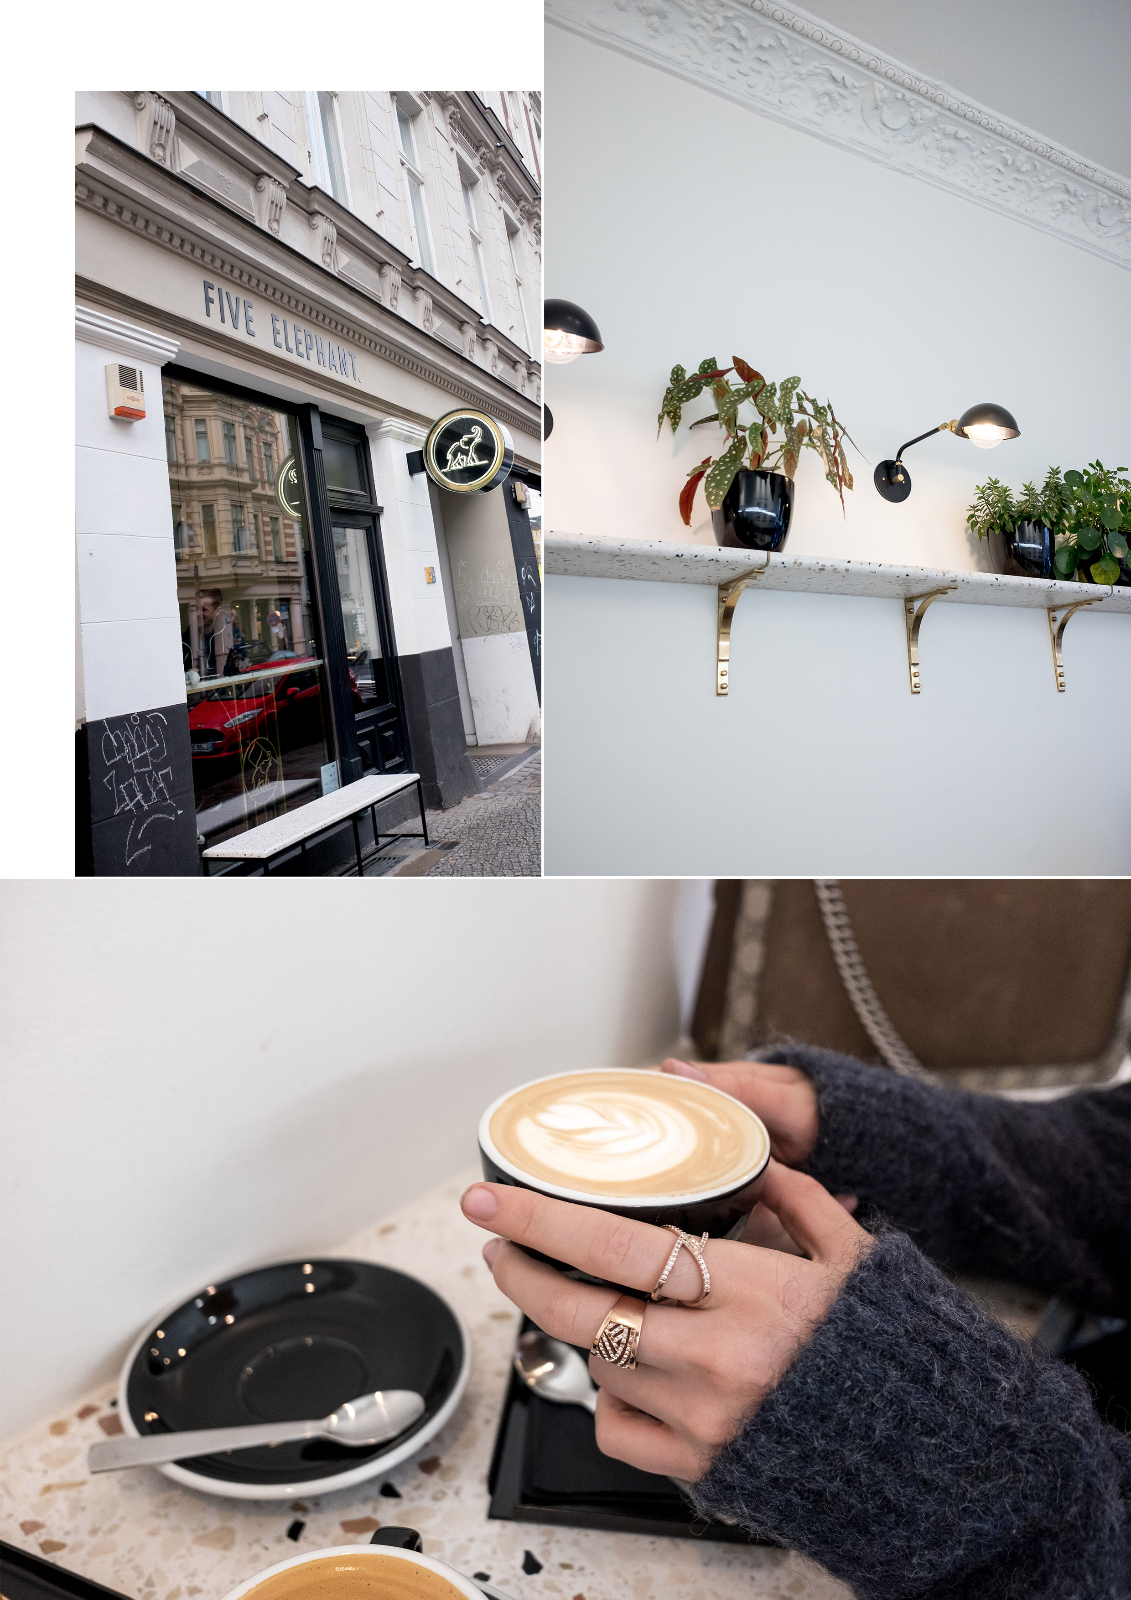 best_Coffee_Berlin_Kaffee_Trinken_bester_Mitte_The_Barn_Five_Elephant_Zeit_für_Brot_The-Limits-of-Control-Fashion-Fashionblogger-Blogger-Berlin-Deutschland-Modeblog-Modeblogger